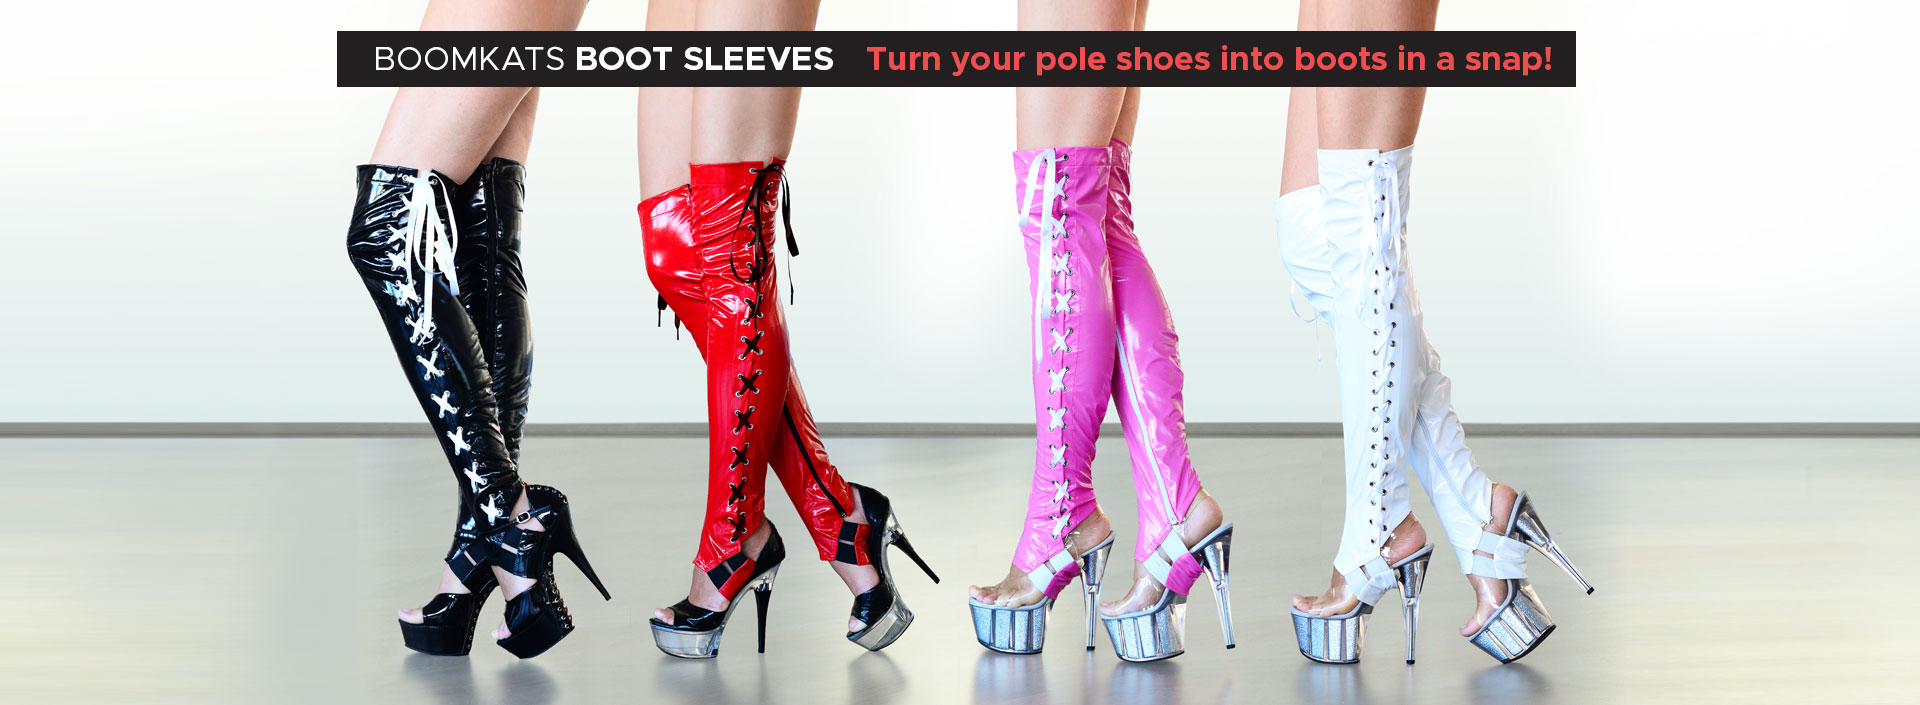 Boomkats poledance boot sleeves